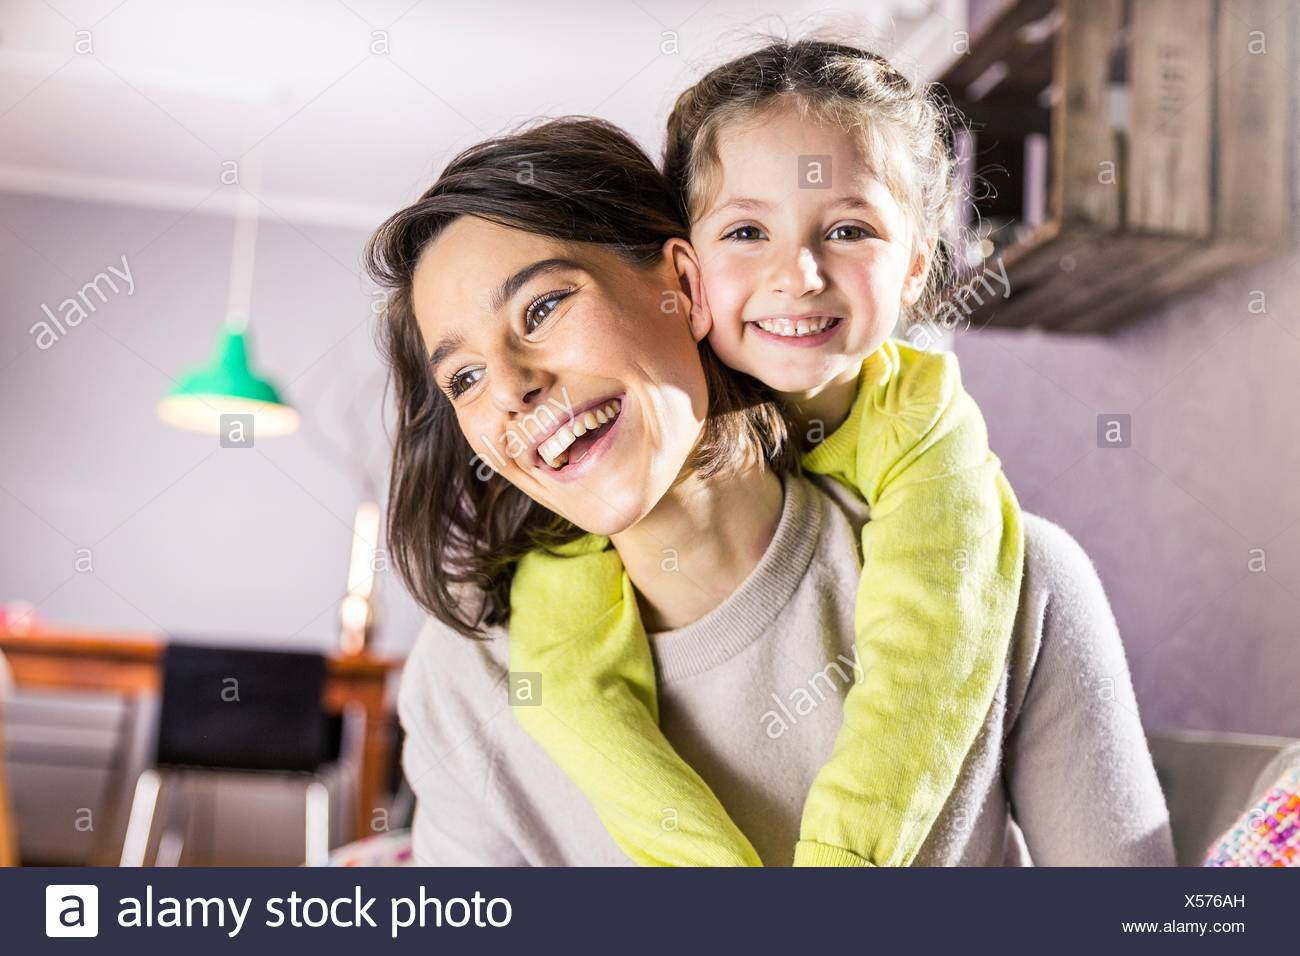 Portrait of girl getting piggyback ride from mother in living room - Stock Image